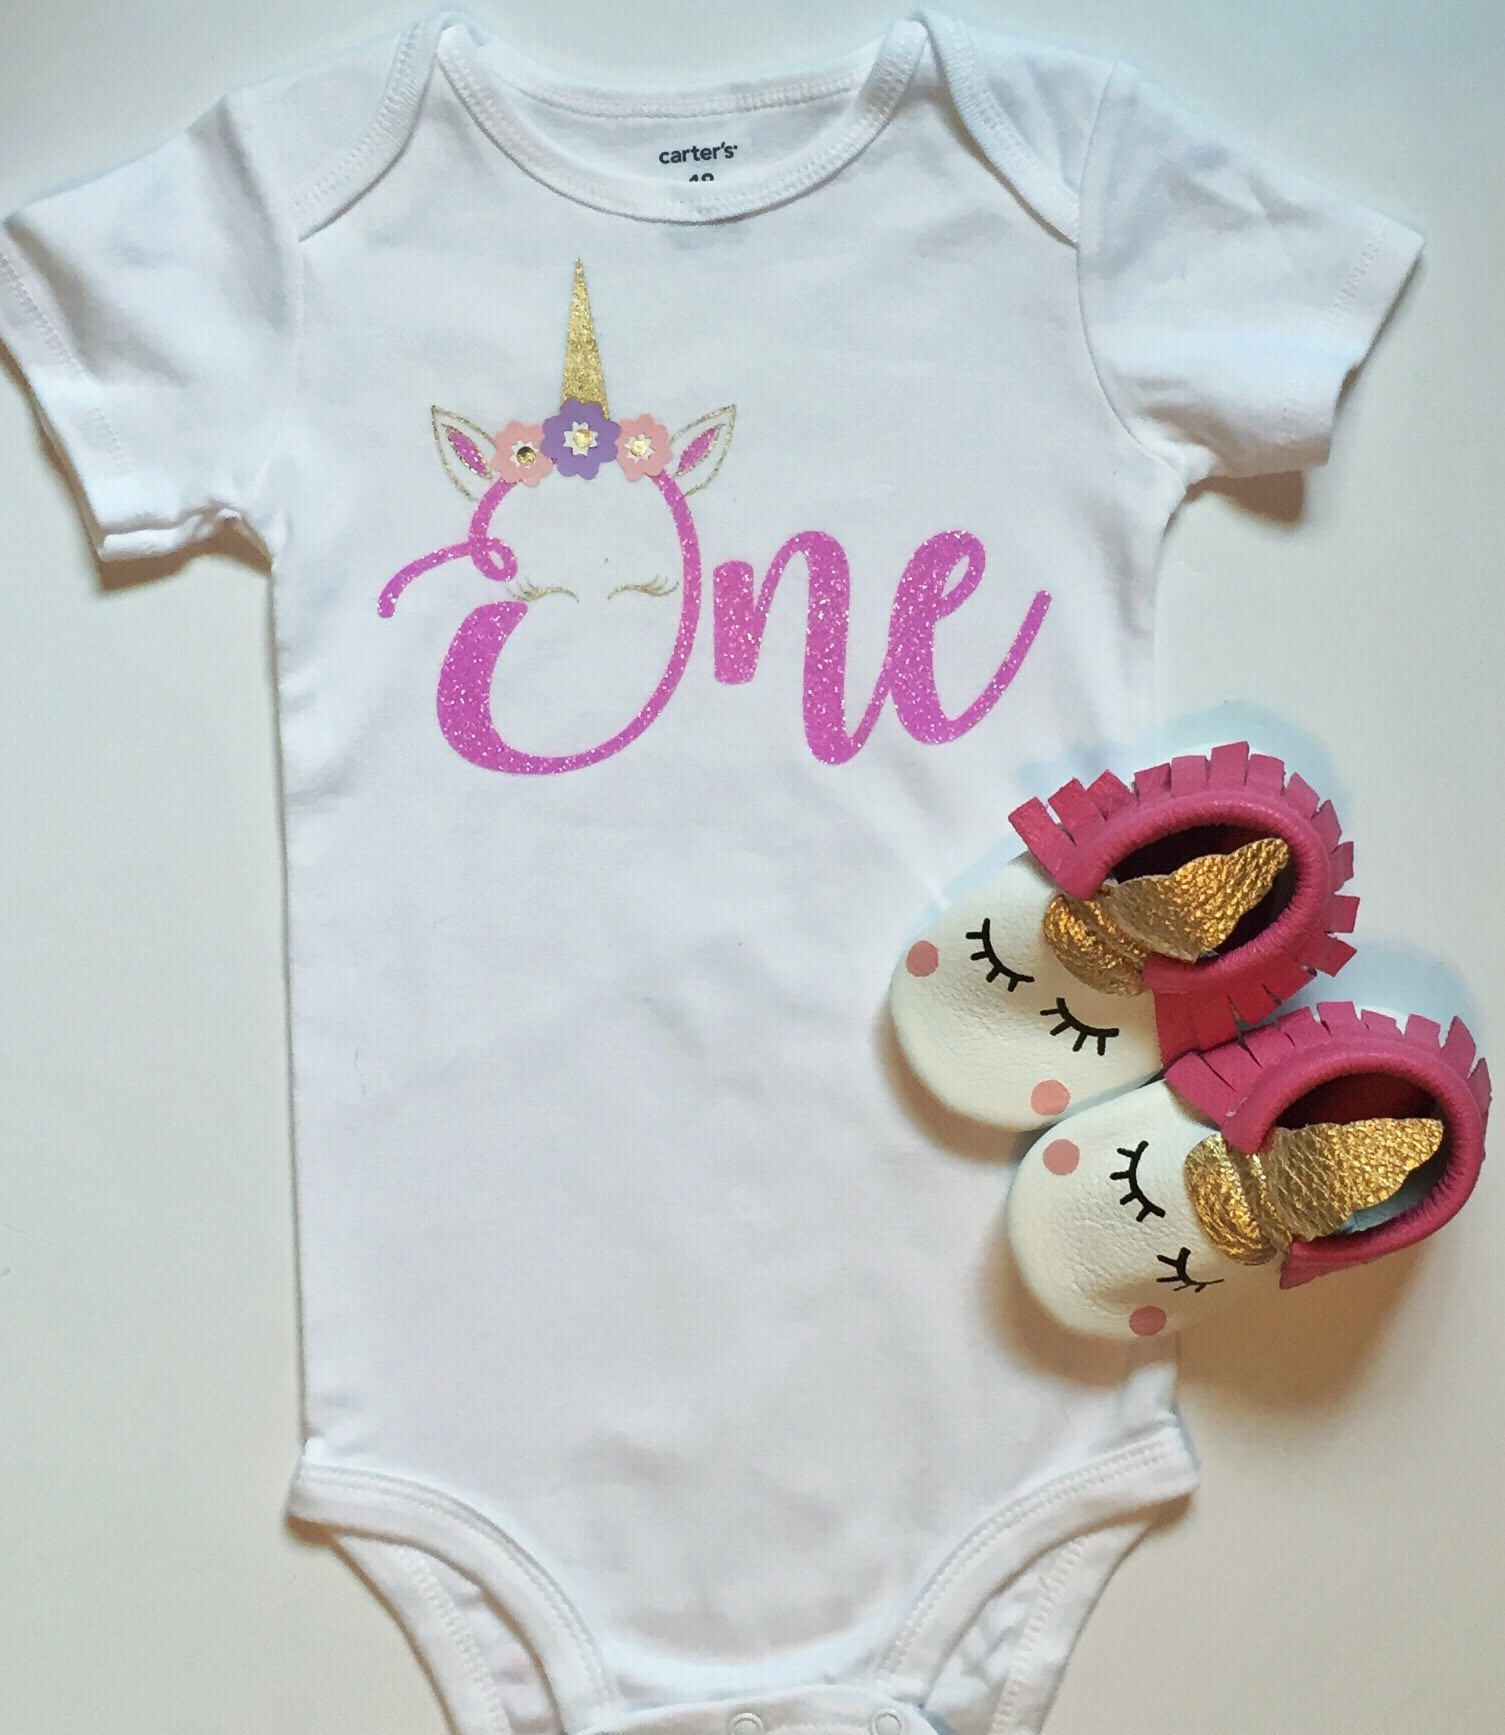 4b699aa0c First Birthday Shirts, Baby Girl 1st Birthday, Unicorn Birthday Parties,  Unicorn Party, First Birthday Parties, Happy 1st Birthdays, Unicorn Shirt,  Birthday ...